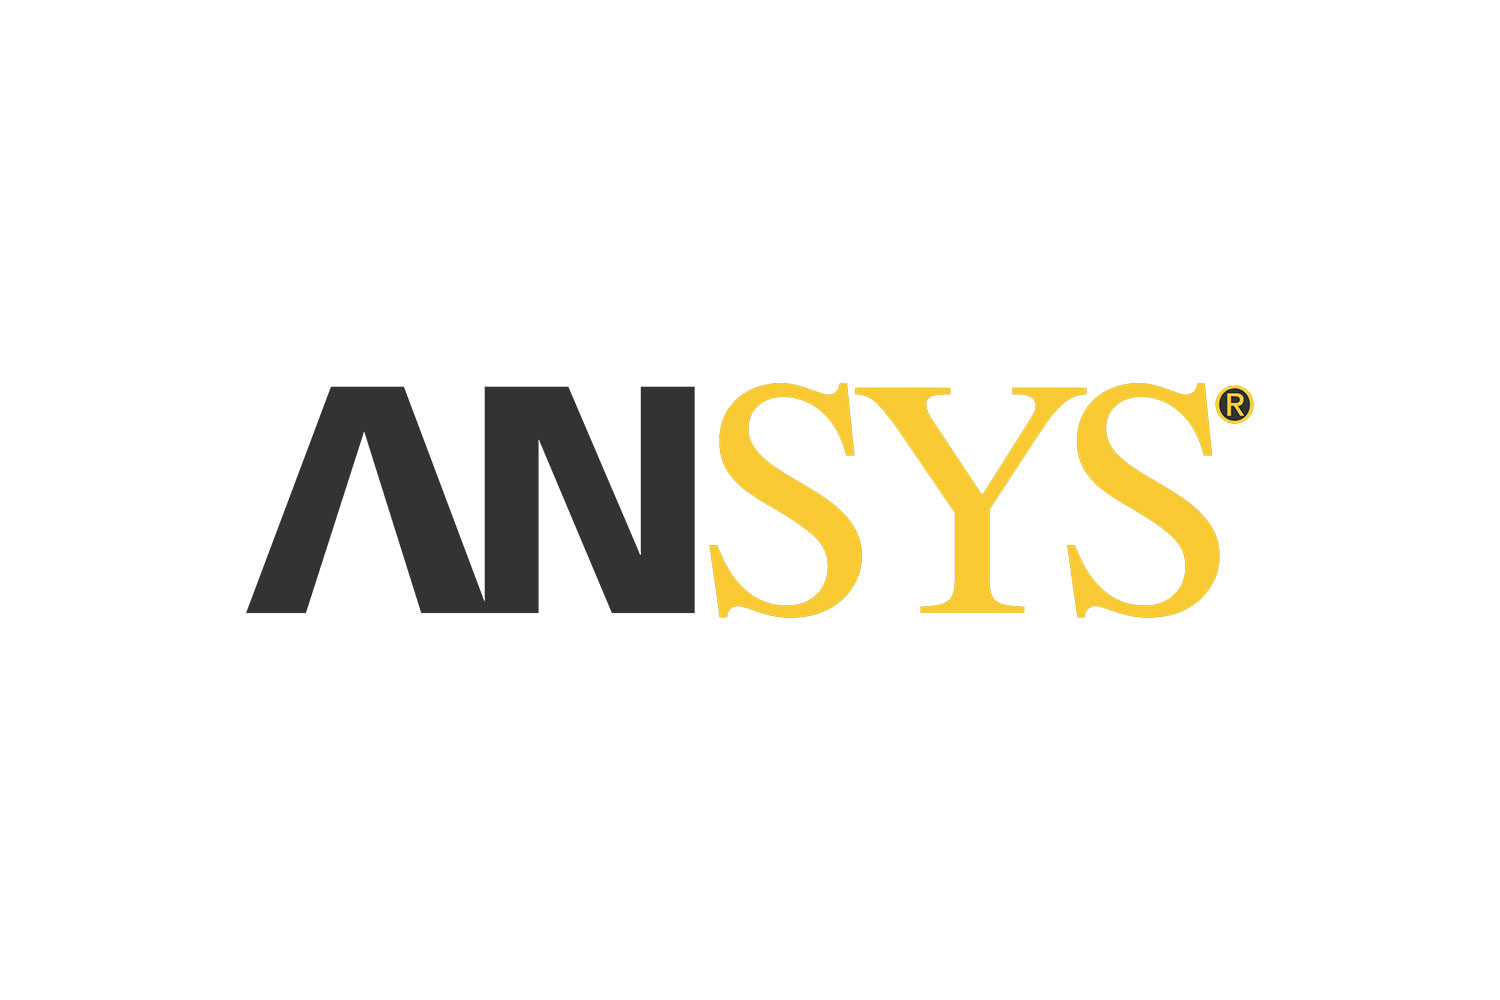 ANSYS Introduces Industry's Most Comprehensive Pay-Per-Use